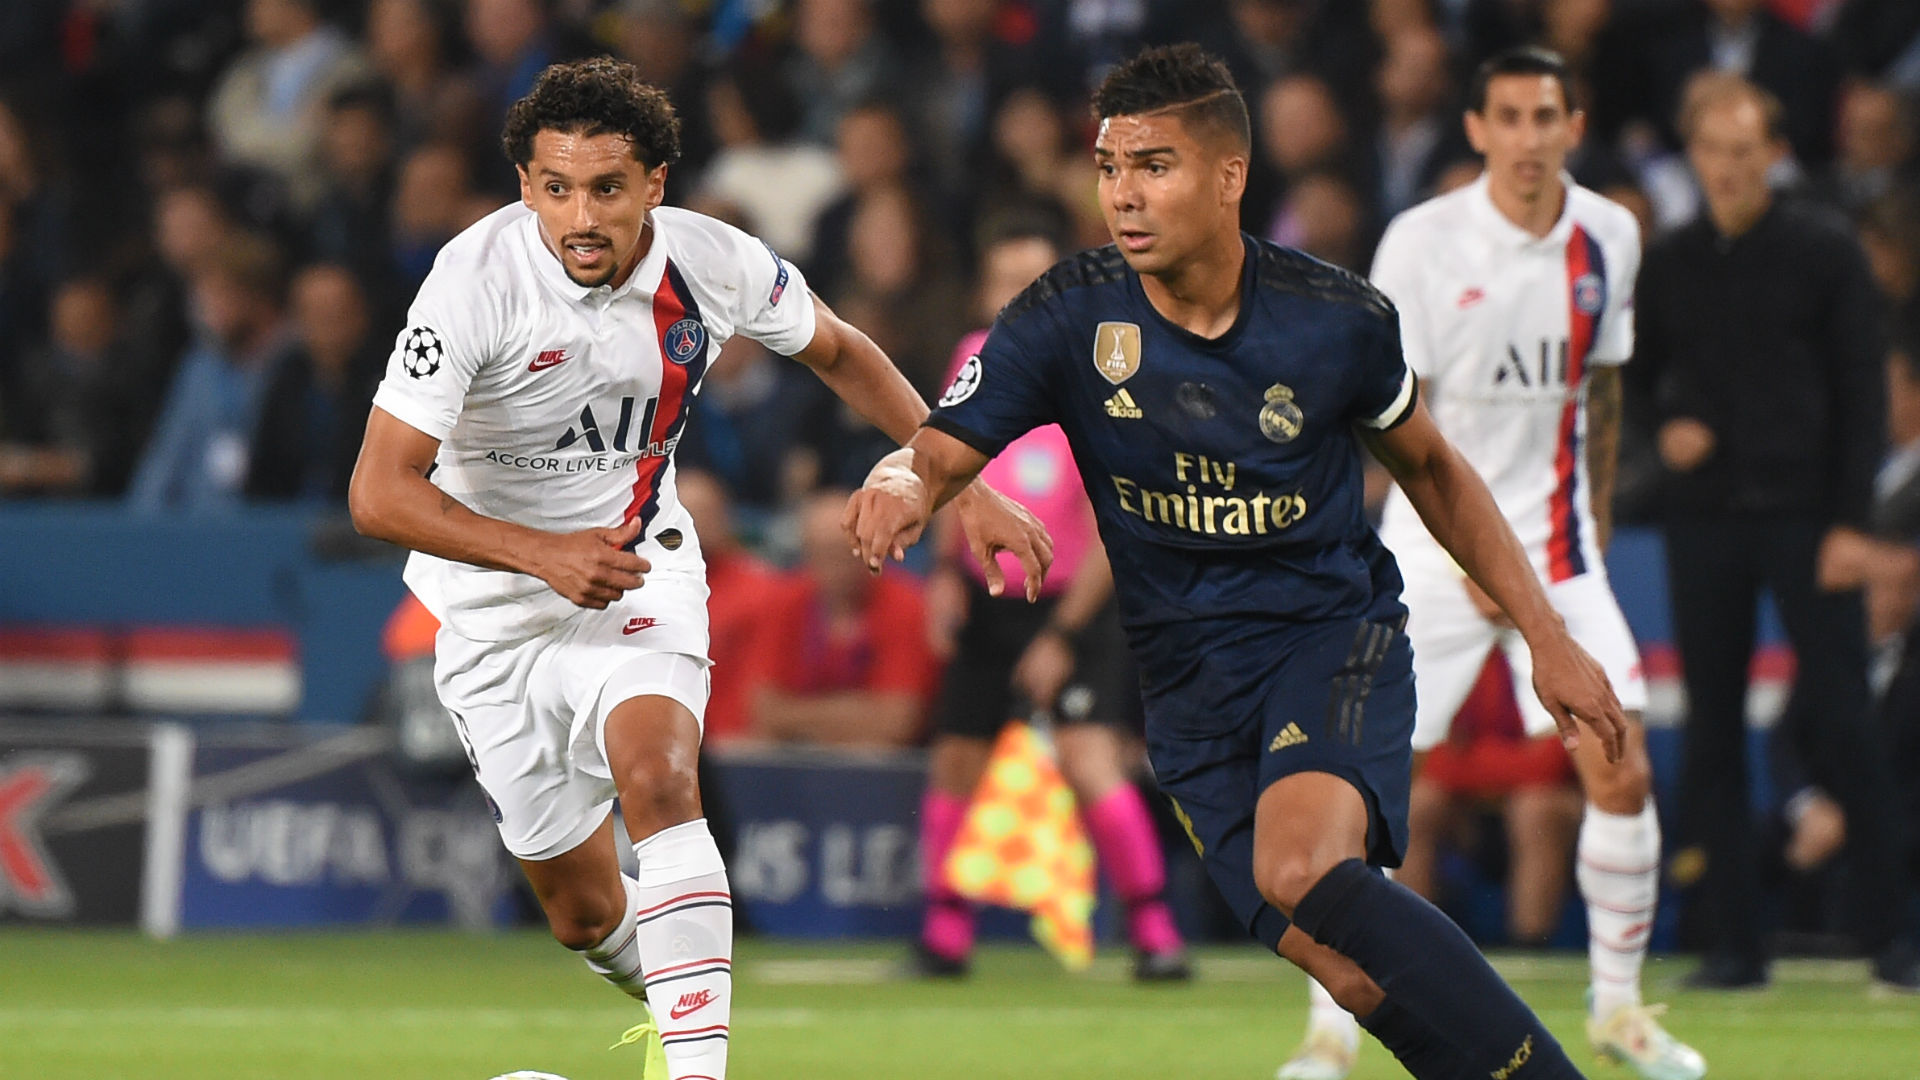 'There are no excuses' - Casemiro laments Real's biggest Champions League defeat under Zidane